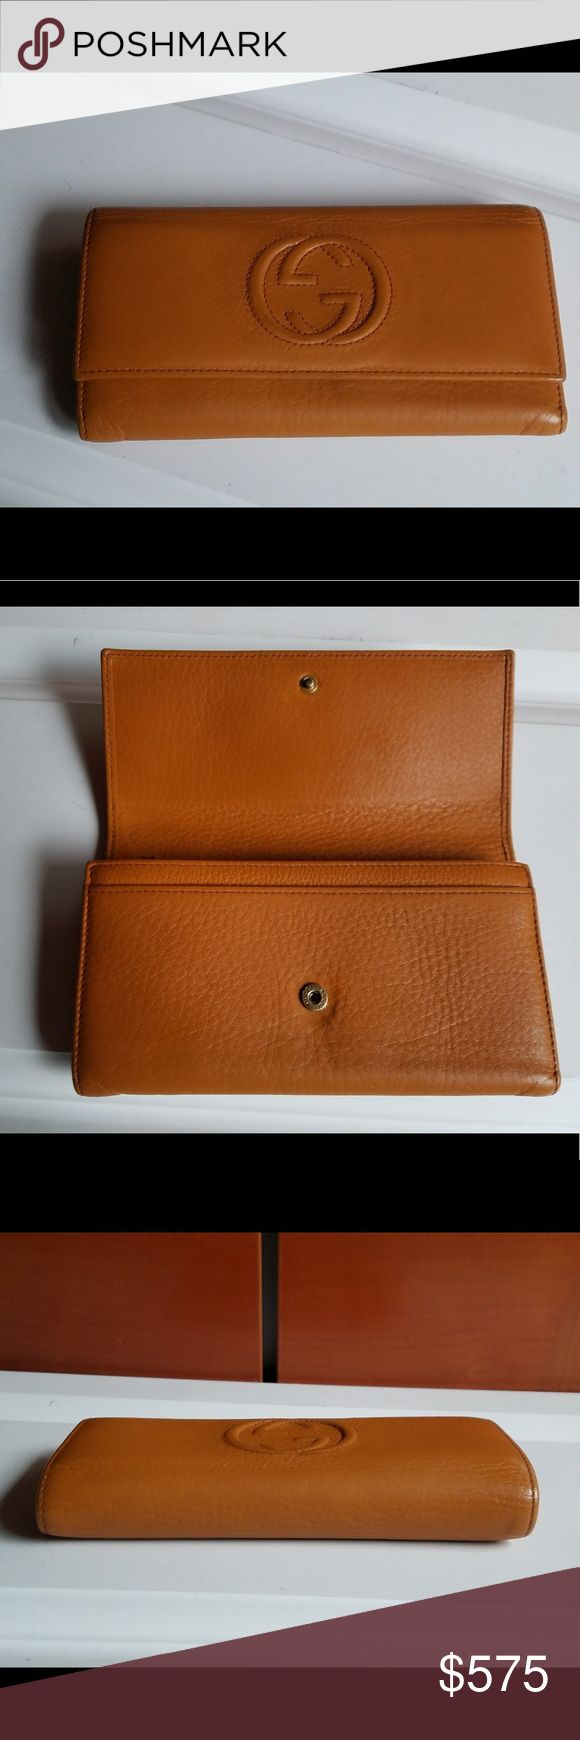 GUCCI SOHO LONG WALLET DARK tan/orange color Gucci soho wallet Very. Good used condition as shown on pict orange color  but to me color looks more like deep tan pict are taken in natural light without flash so represented way it actually look snap closure many different compartments inside as shown pict of serial #included  also has been professionally authenticated since received as gift will come with papers of authenticity7 1/2 inch wide 4 inch tall  1inch thick  wallet Is on heavier…